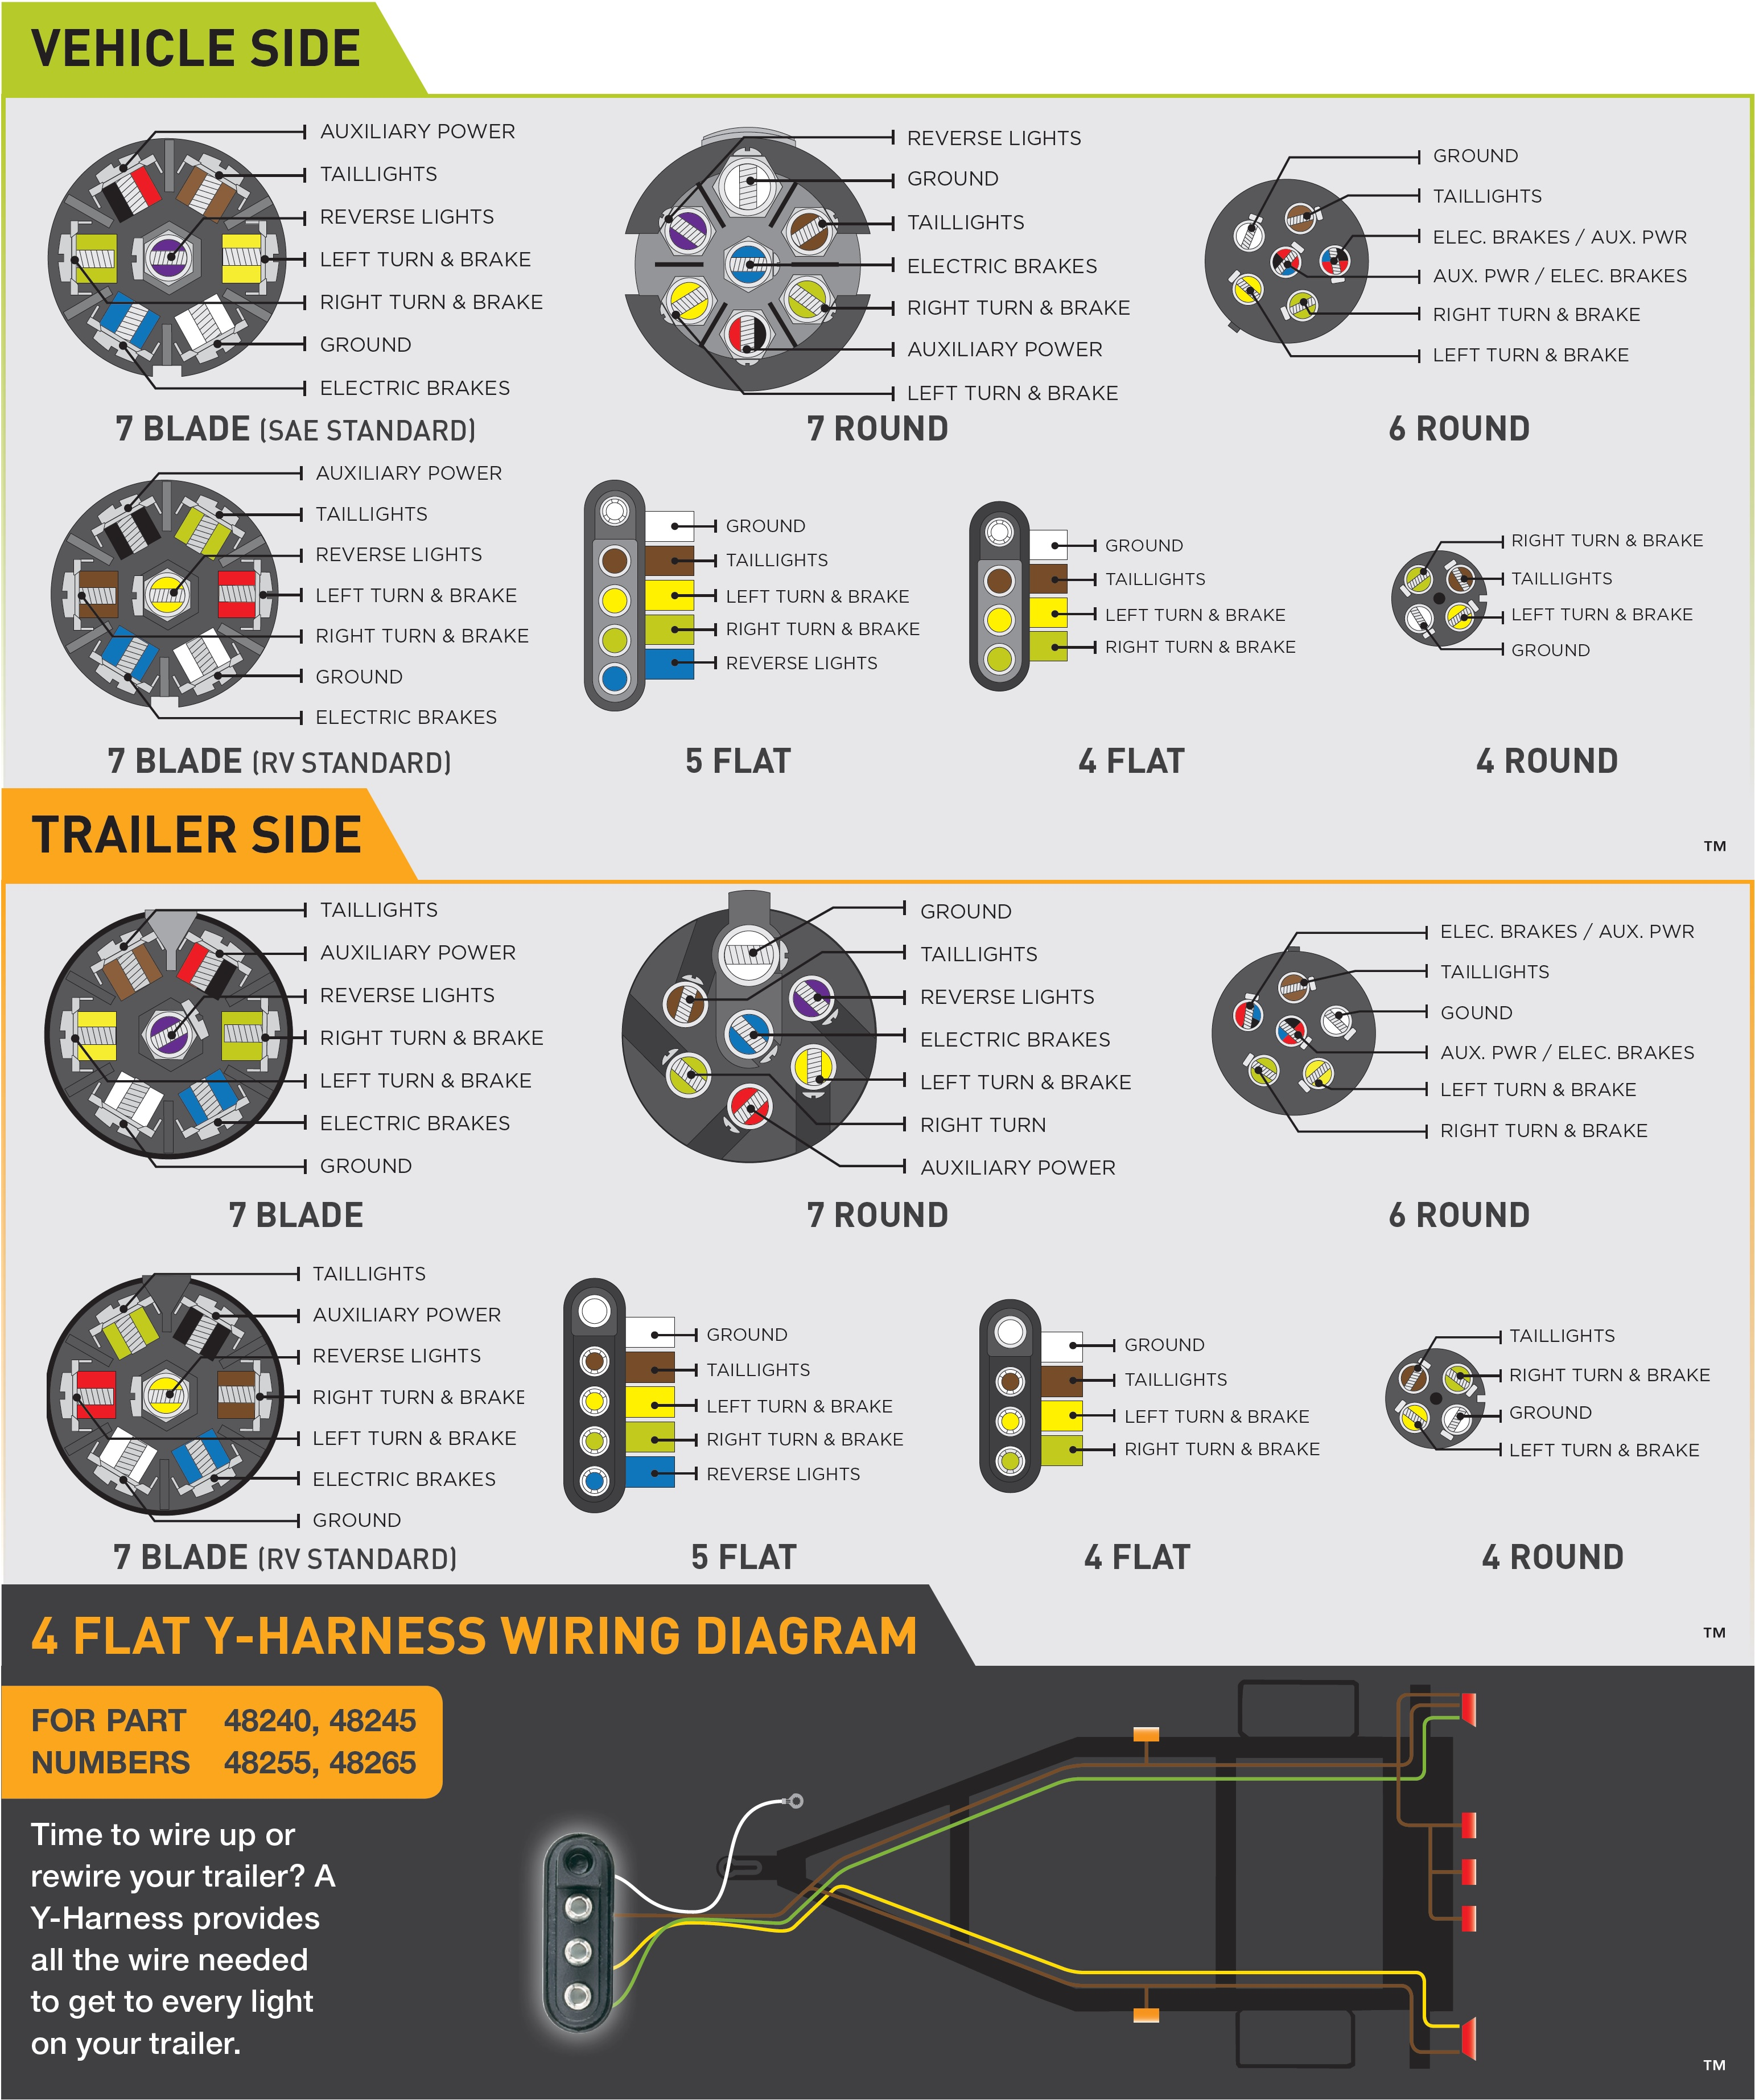 WiringGuides wiringguides jpg 2015 chevy silverado trailer wiring diagram at gsmx.co